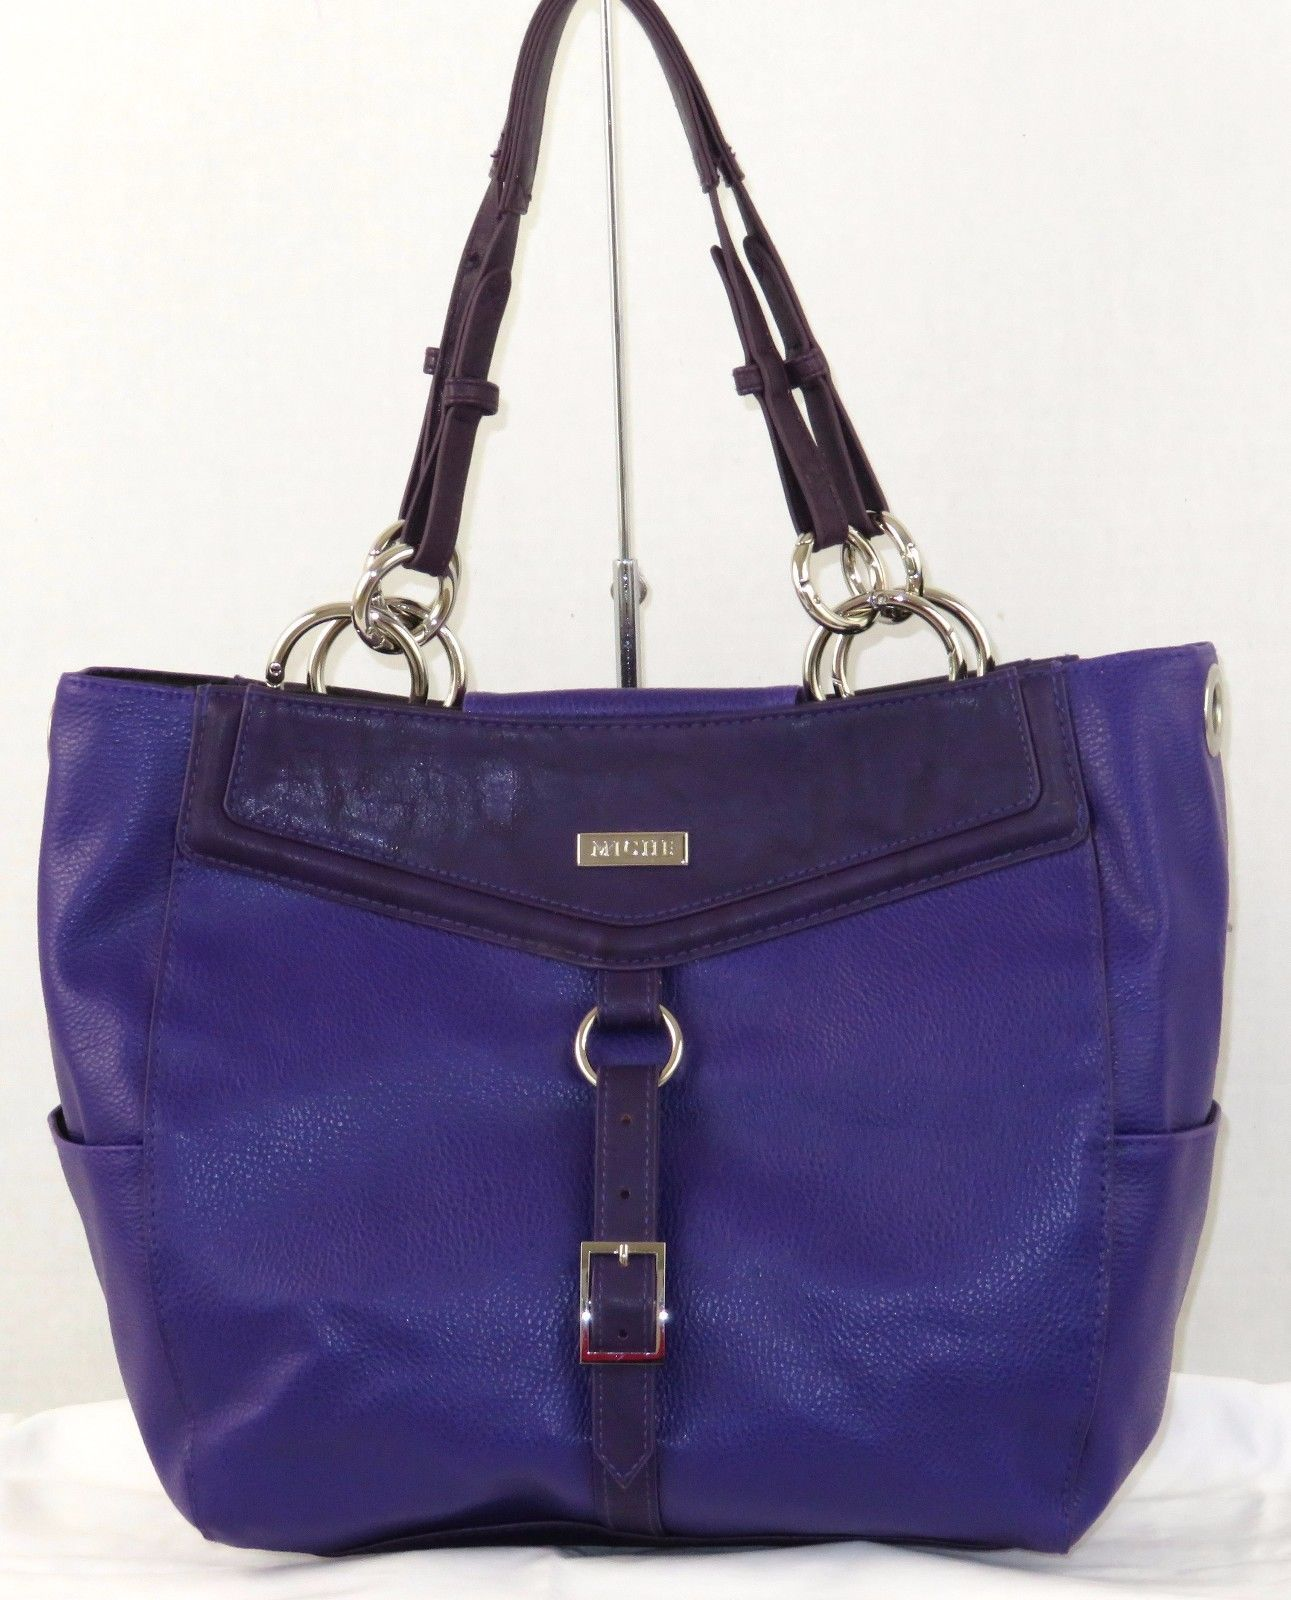 Miche Handbag Demi Base Bag Purse Purple Tristan Shell Straps And Carabiners